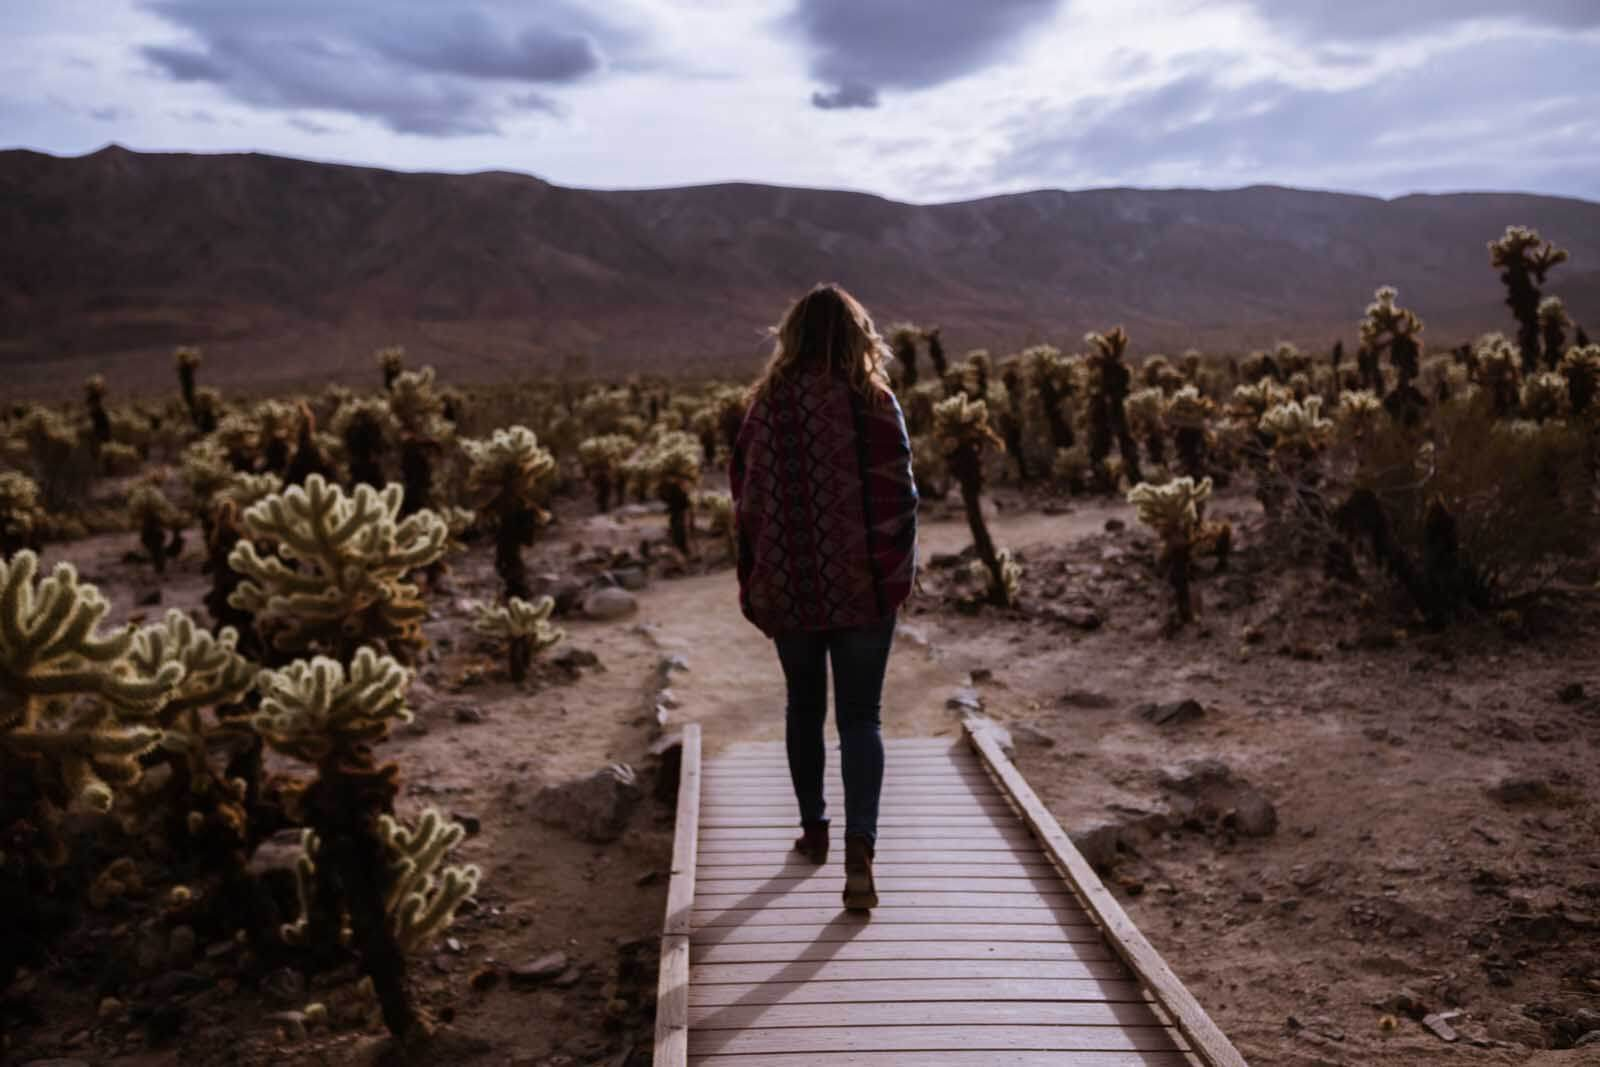 Megan walking through Cholla Cactus Garden in Joshua Tree National Park